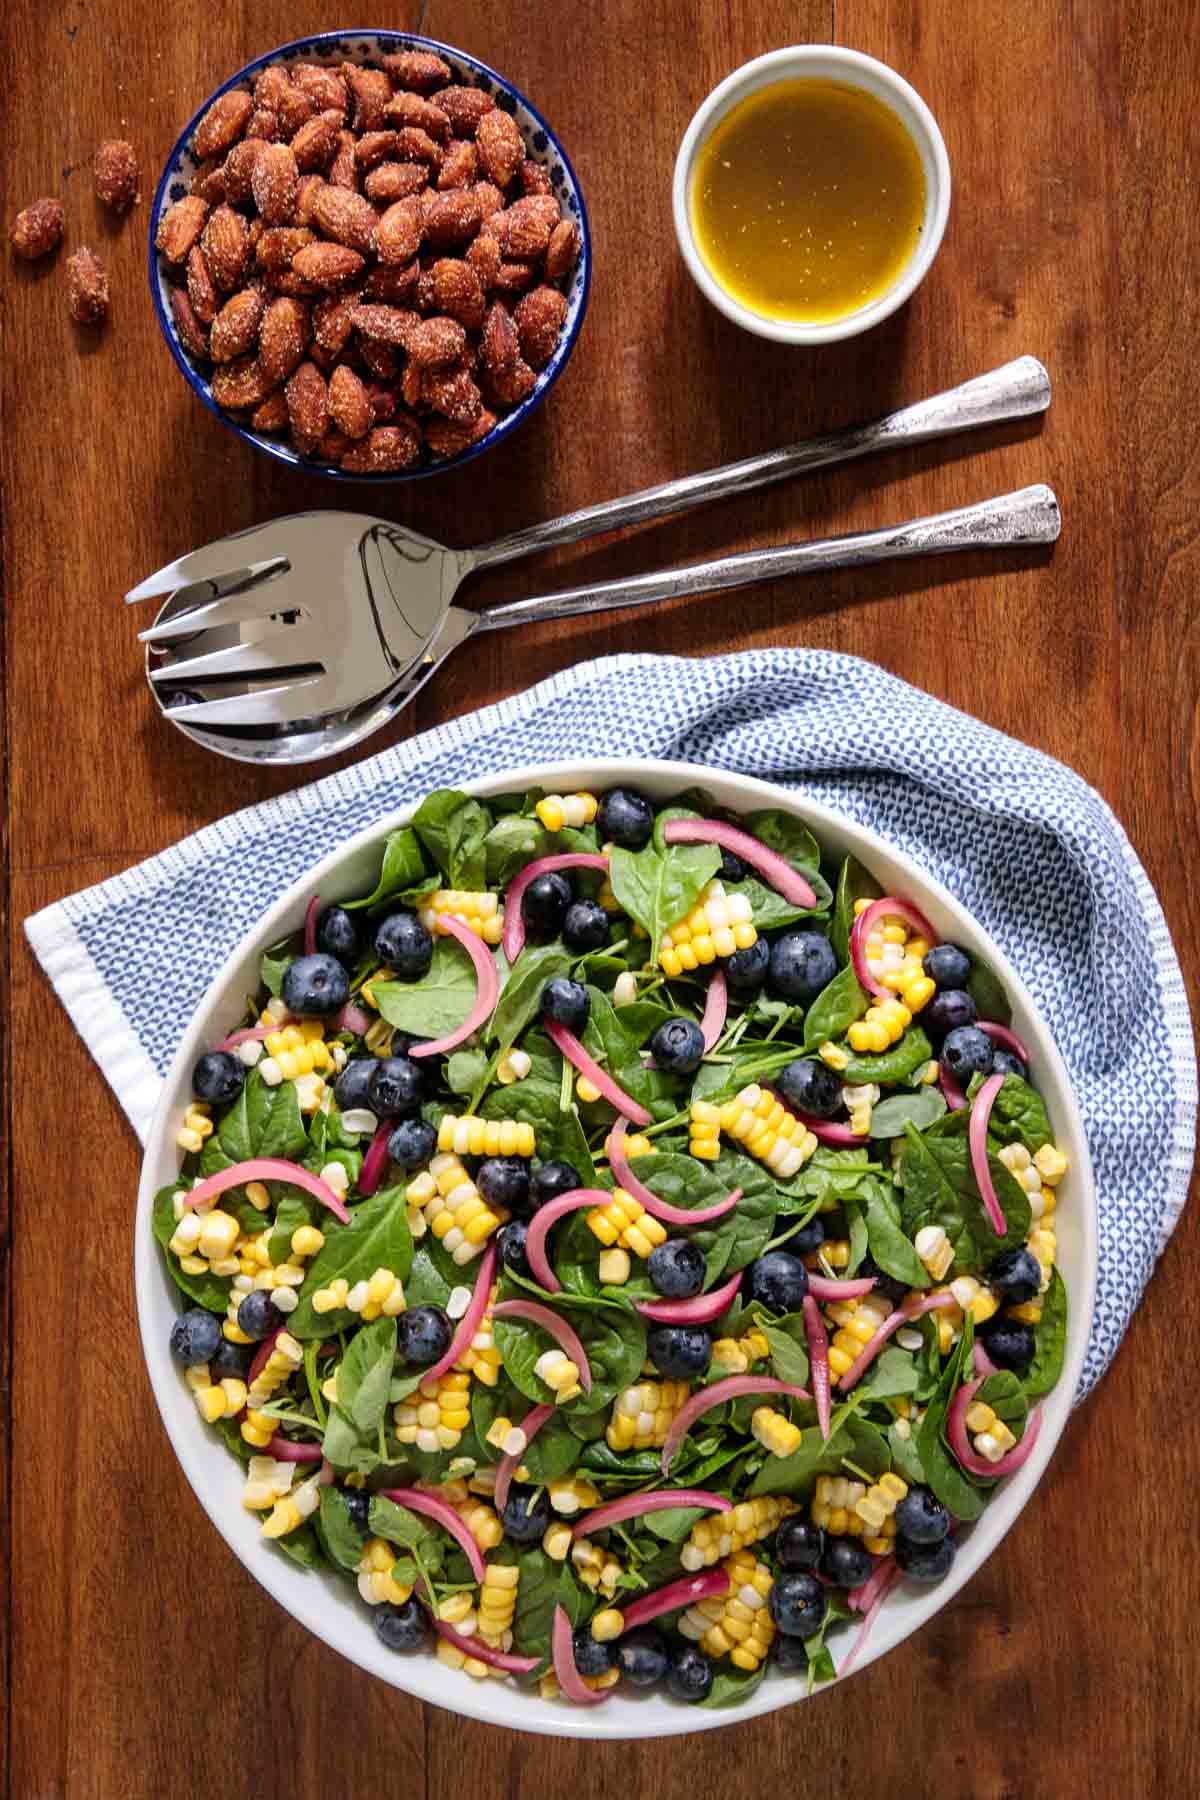 Overhead photo of a salad bowl of Fresh Corn Blueberry Spinach Salad with a bowl of dressing and a bowl of toasted sweet/spicy almonds next to the salad.